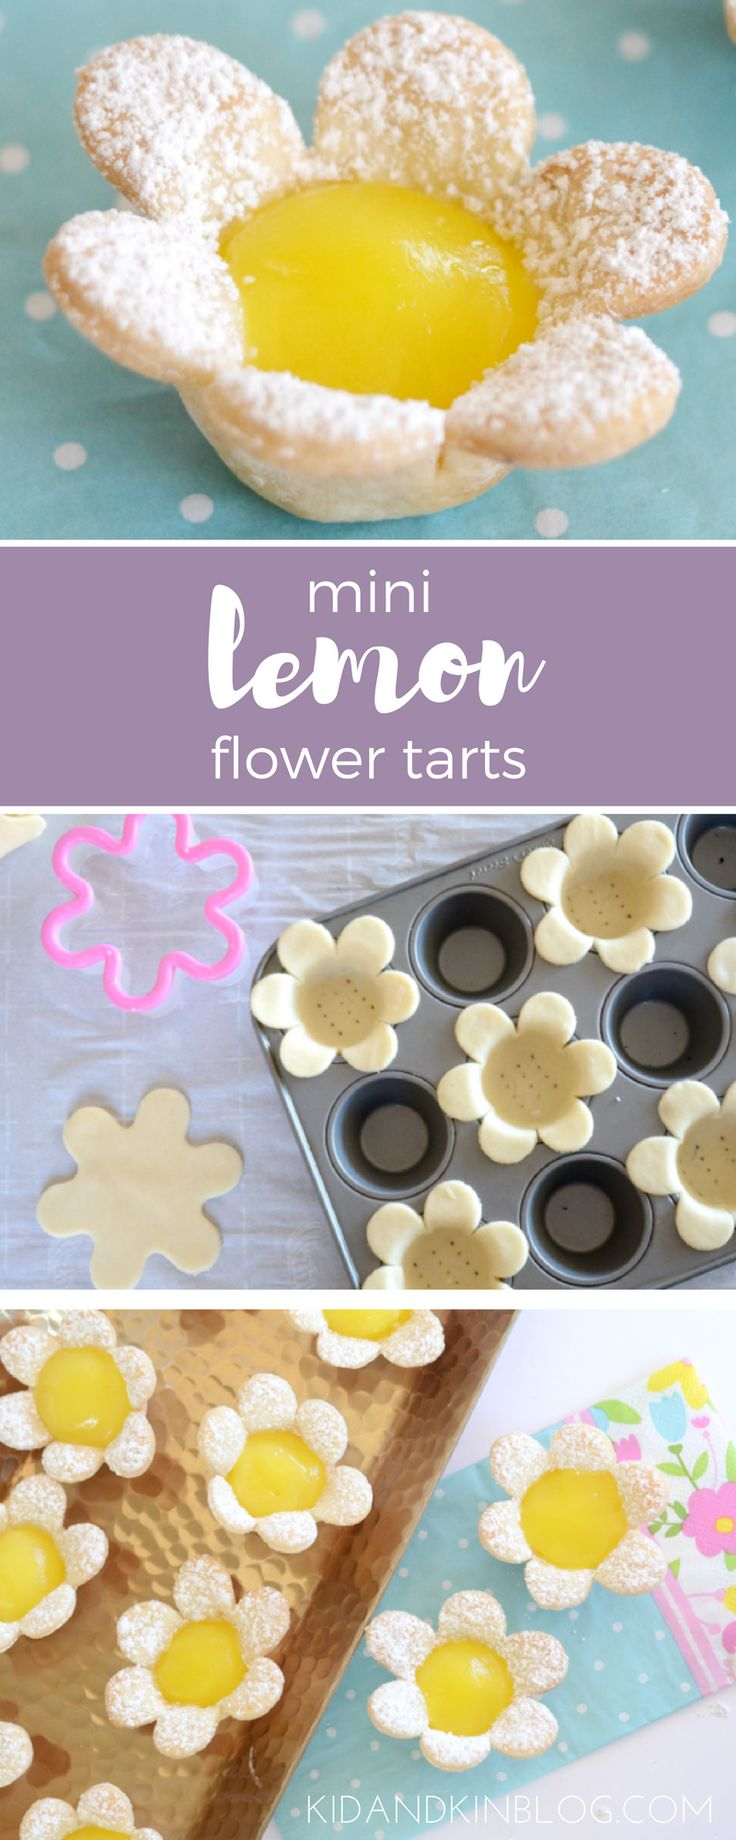 Mini Lemon Flower Tarts. Perfect for Easter, brunch, tea parties or anytime! Kid + Kin.